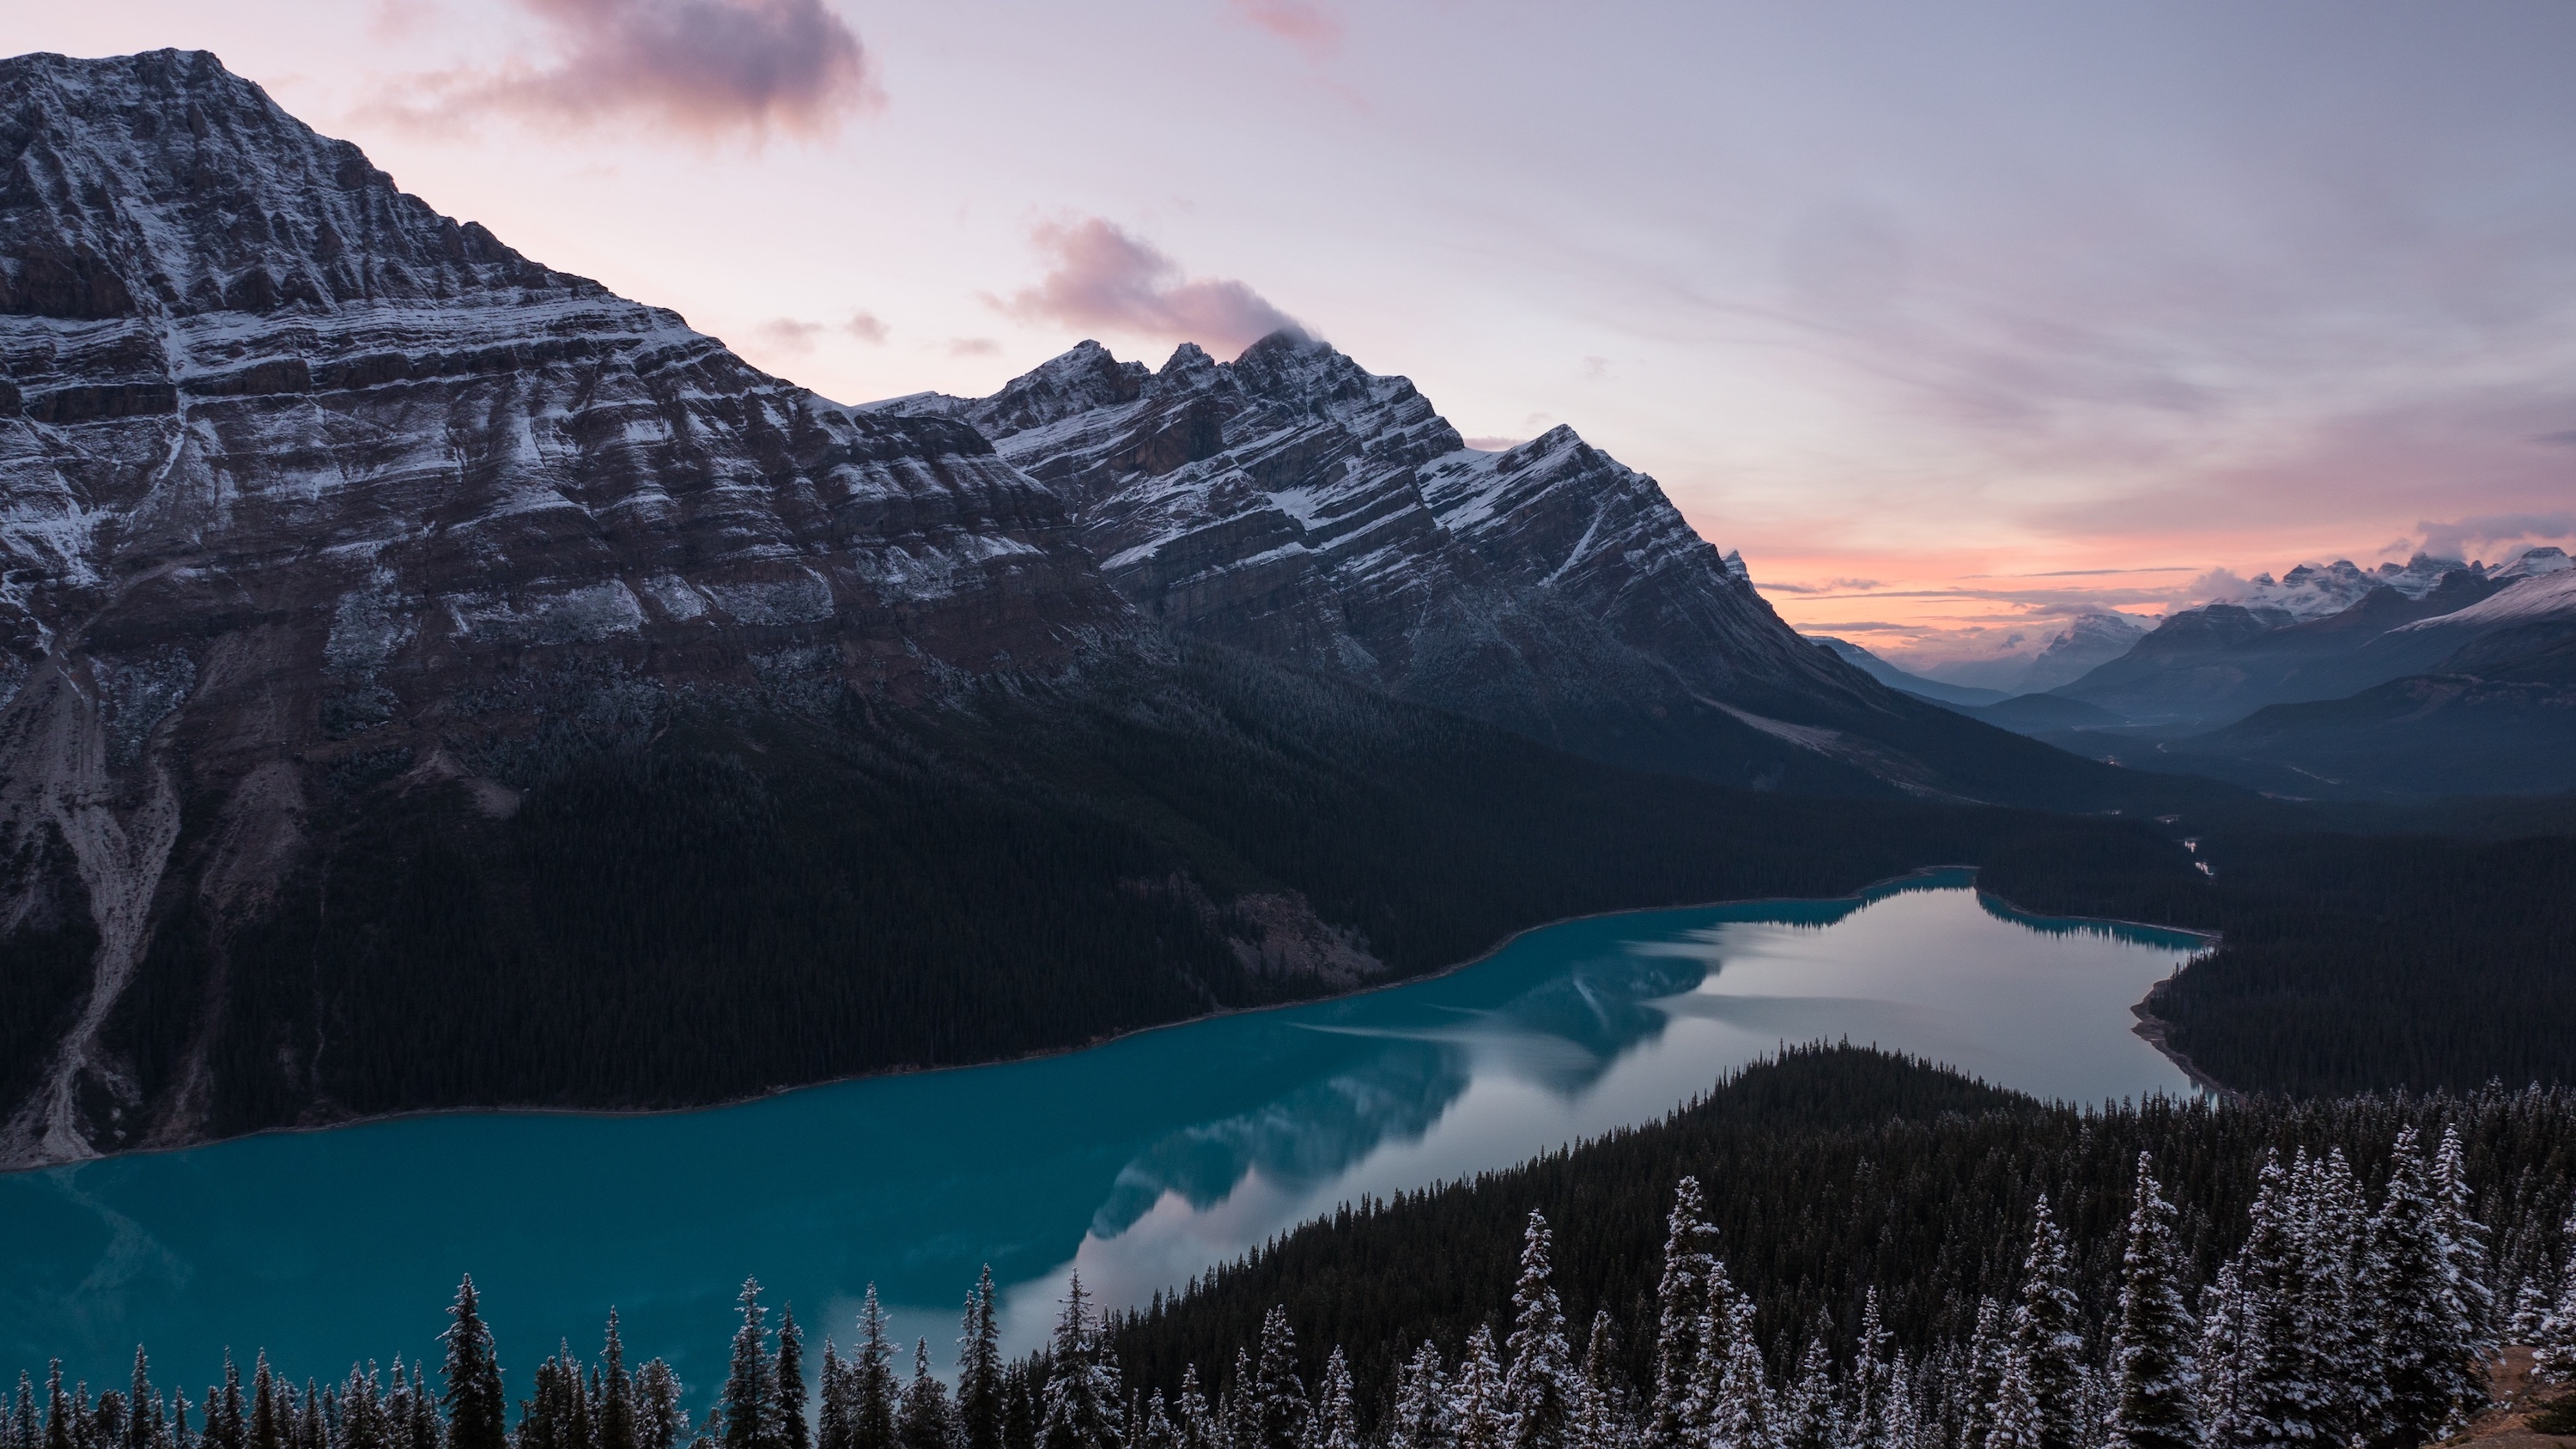 Lake Peyto, Canada, Mark Basarab